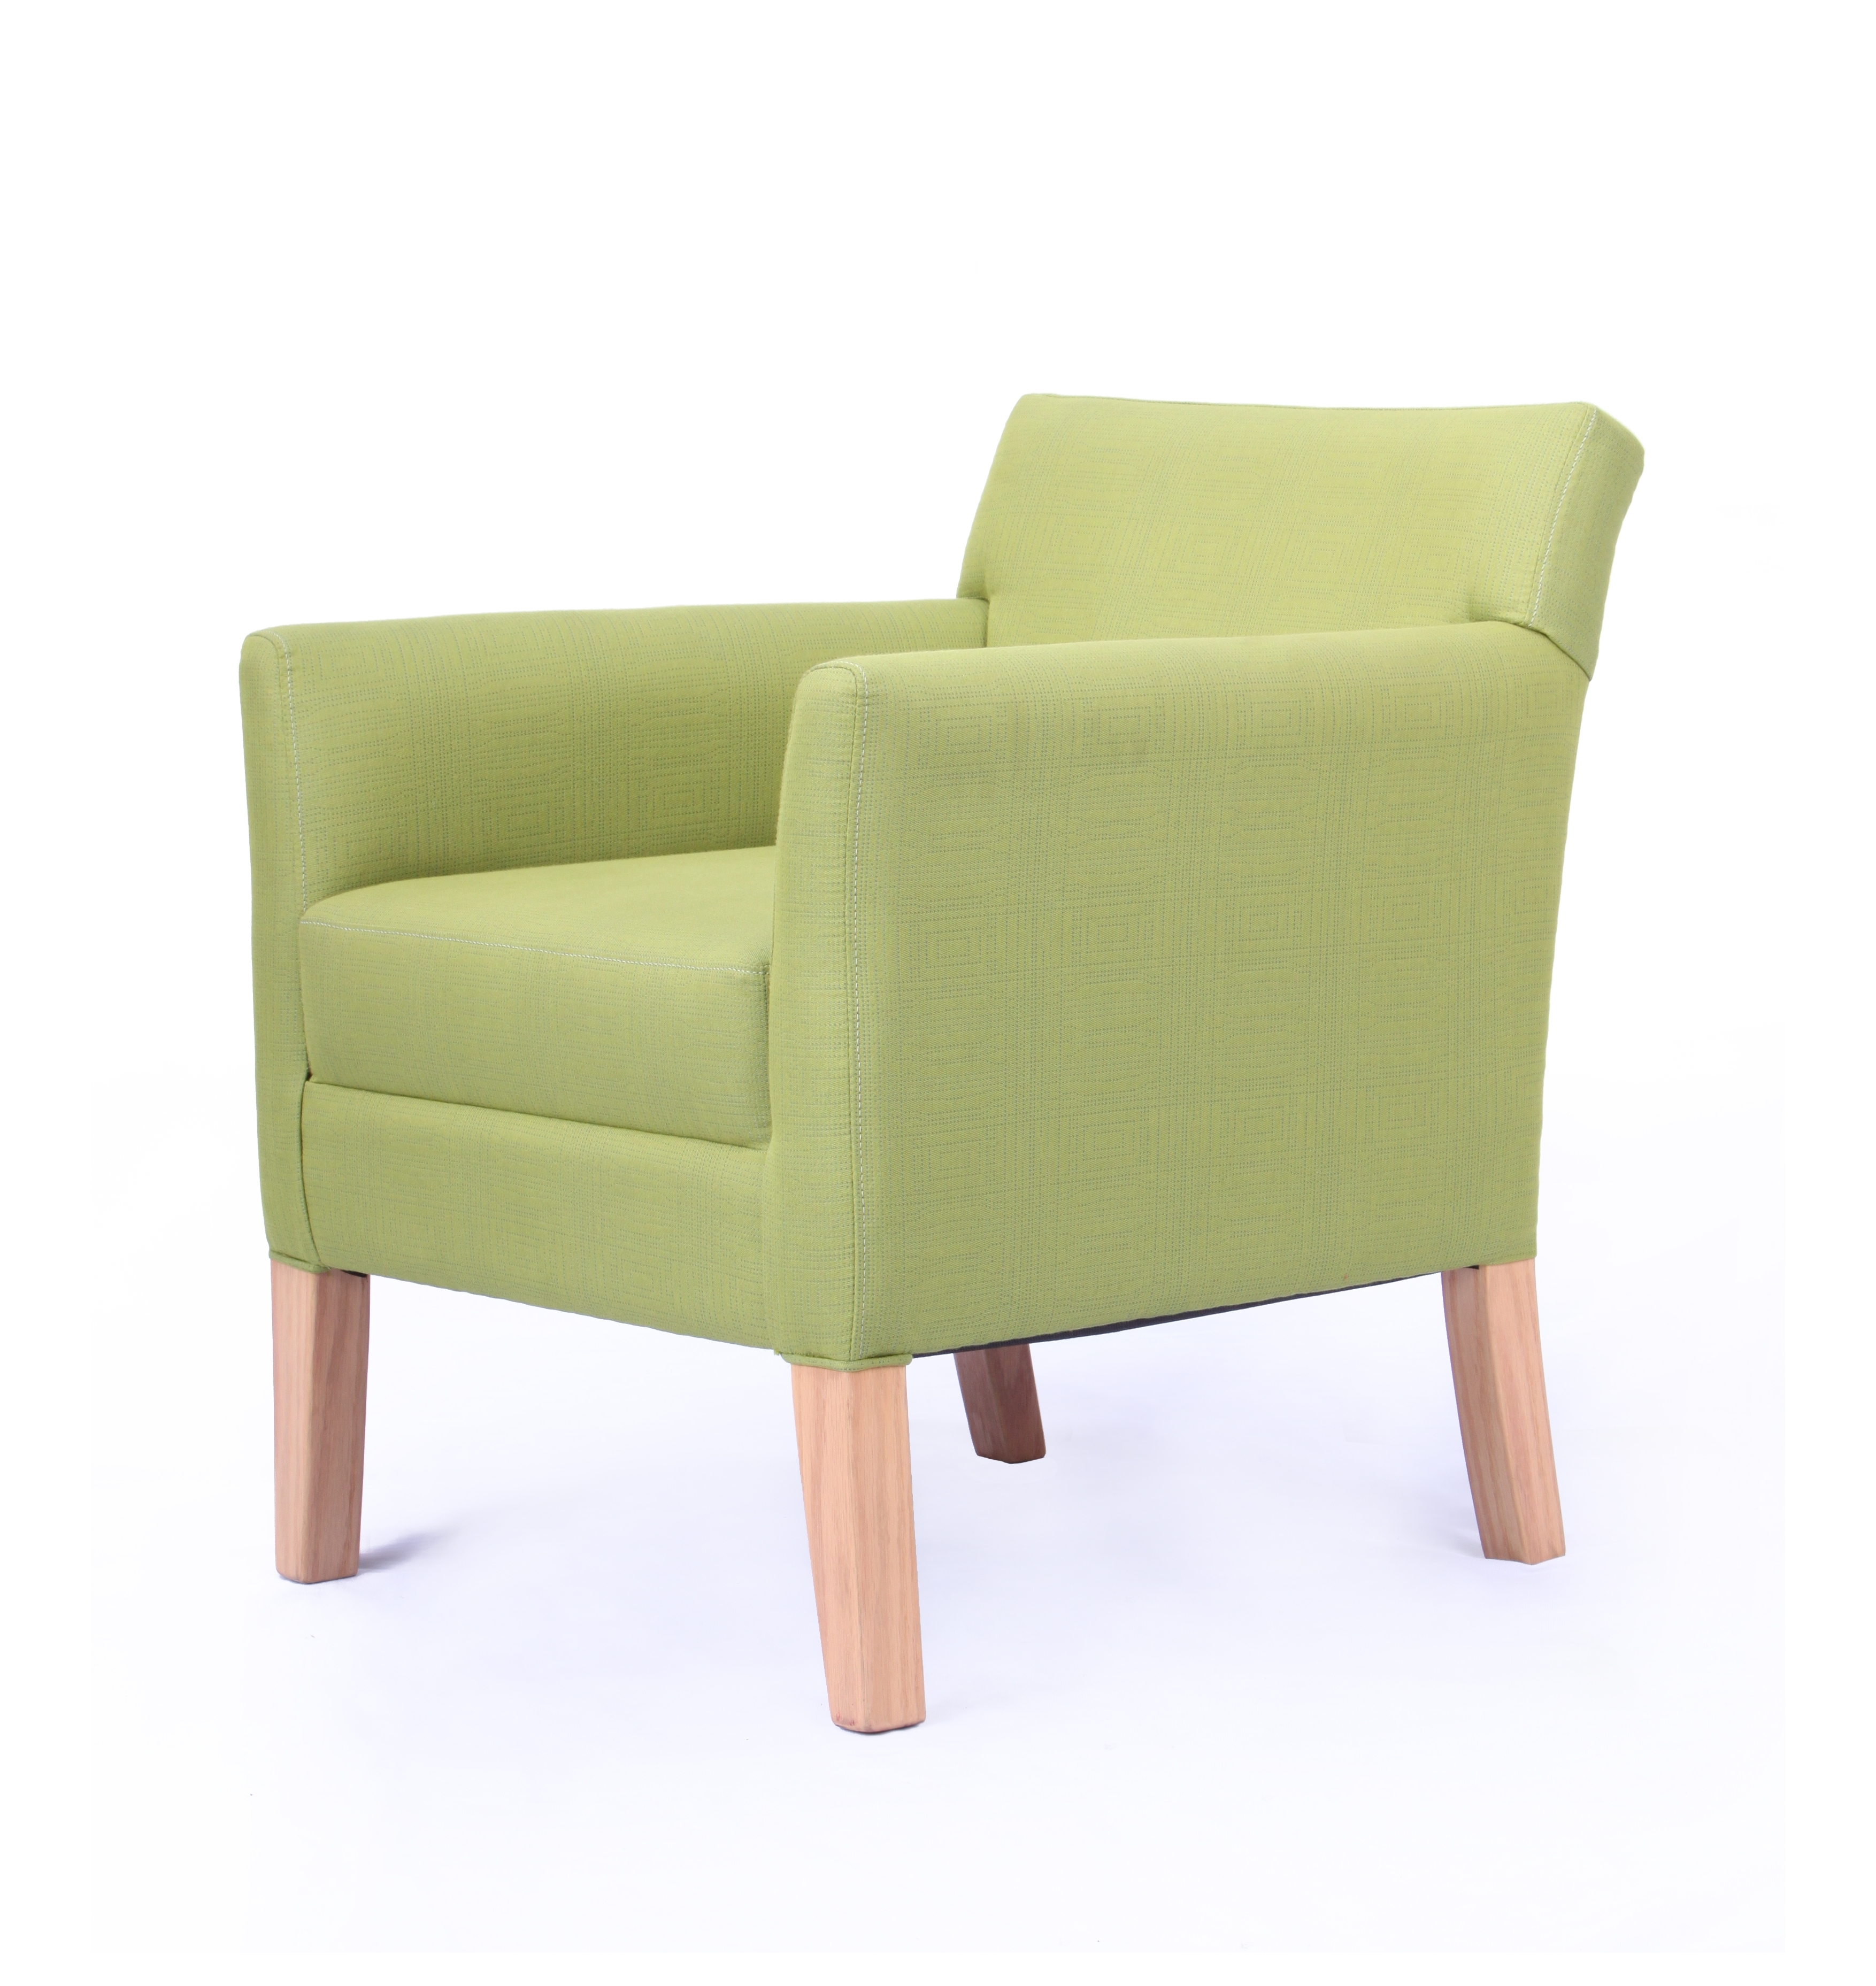 Well Known Green Sofa Chairs Intended For Sofa Chair (View 20 of 20)